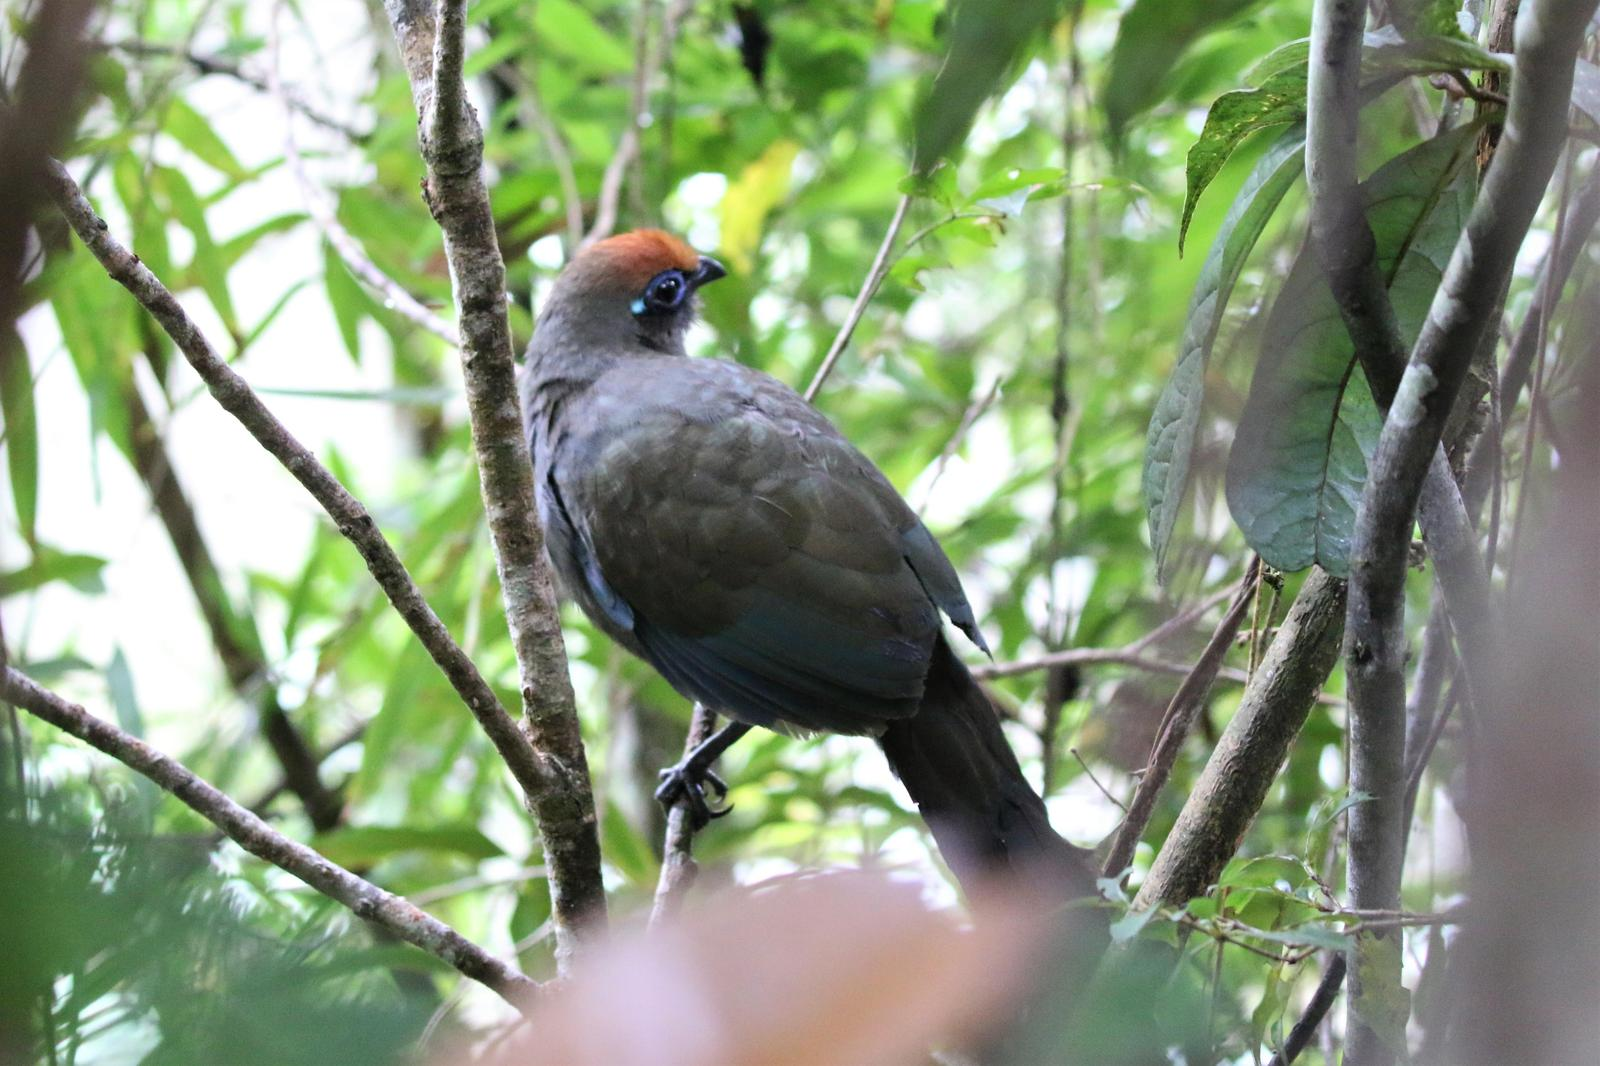 Red-fronted Coua Photo by Richard Jeffers